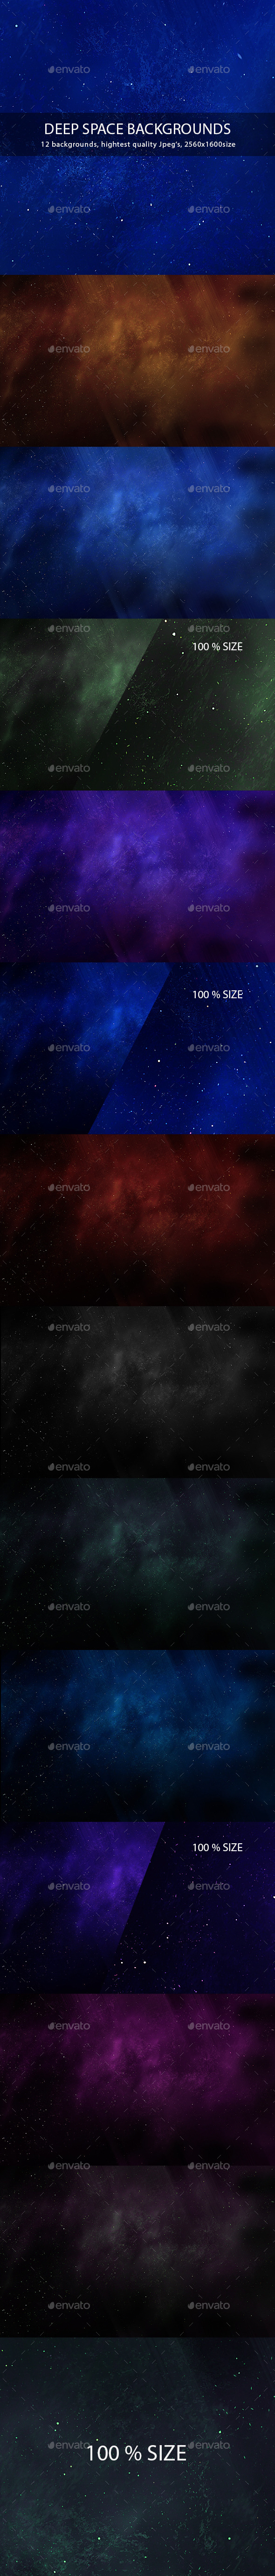 Deep Space Backgrounds - Abstract Backgrounds